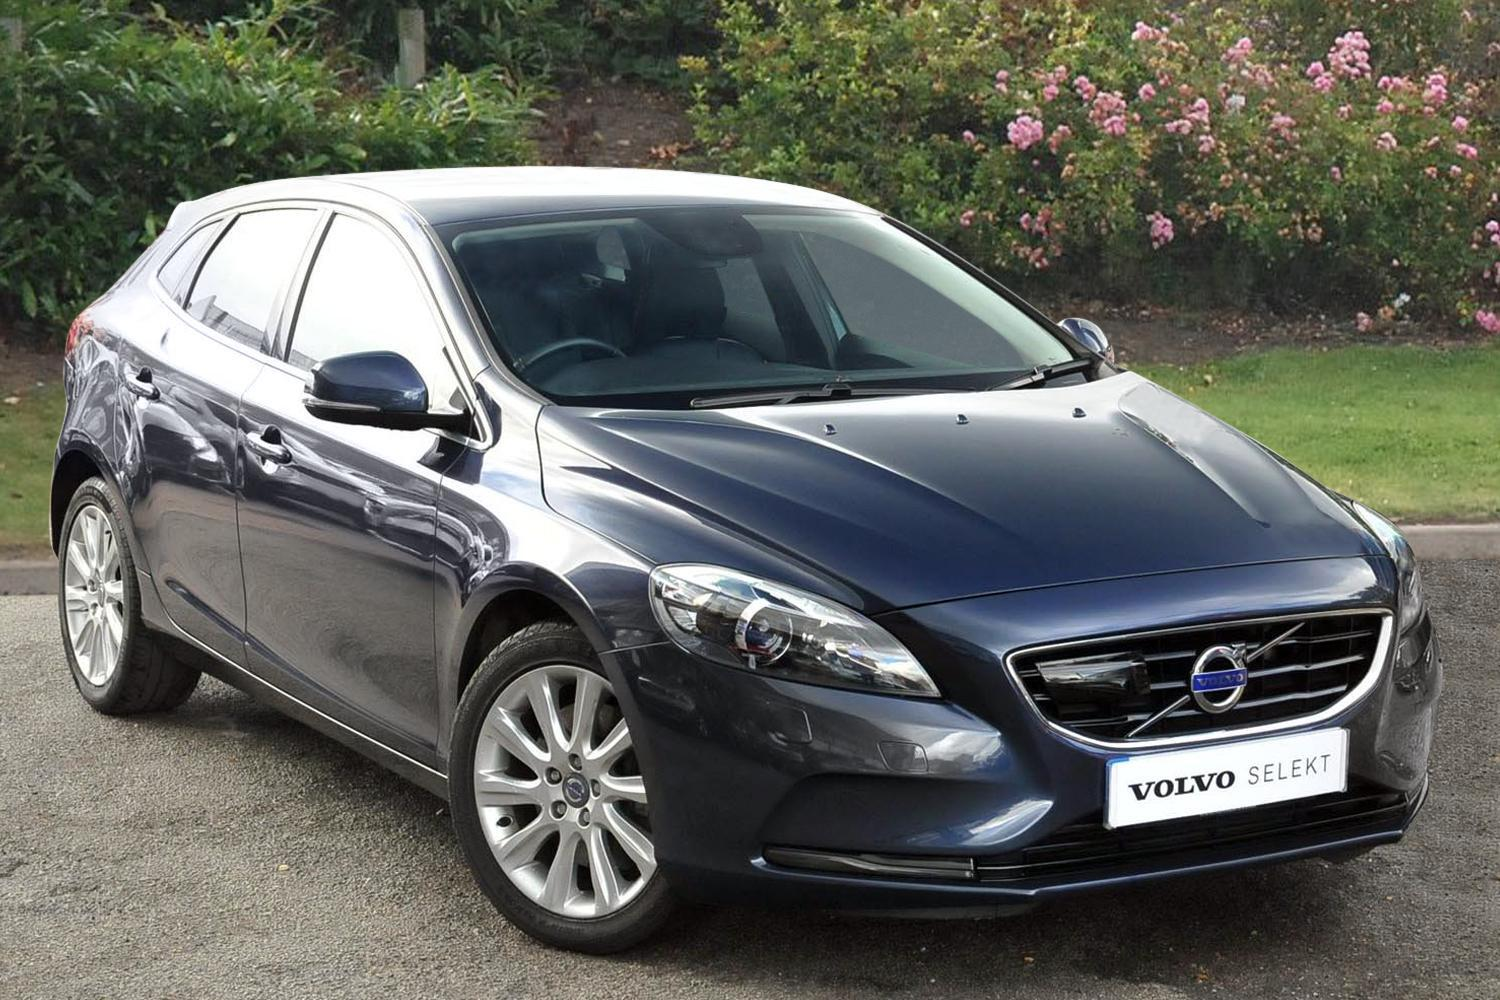 used volvo v40 d3 se lux nav 5dr geartronic diesel hatchback for sale bristol street motors. Black Bedroom Furniture Sets. Home Design Ideas